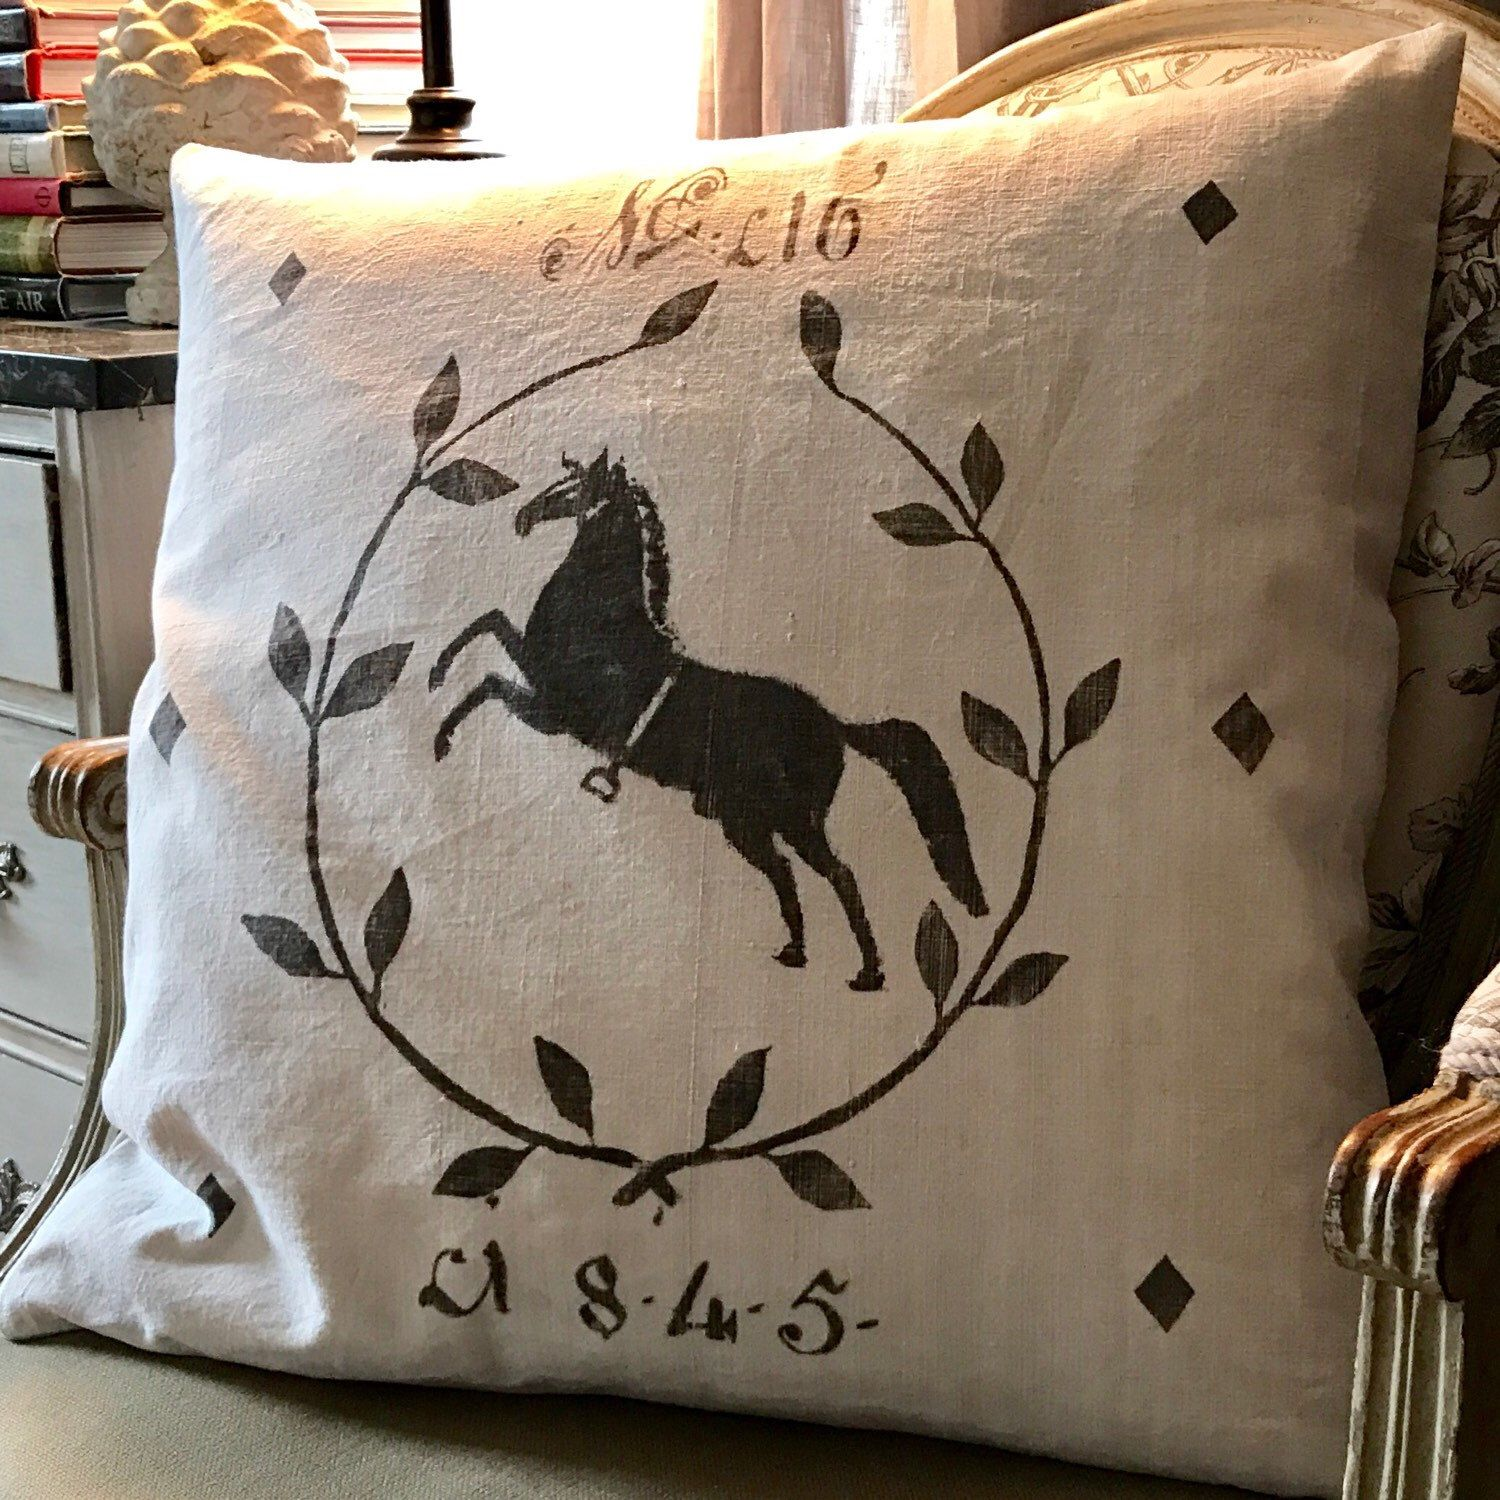 New for your favorite equestrian!